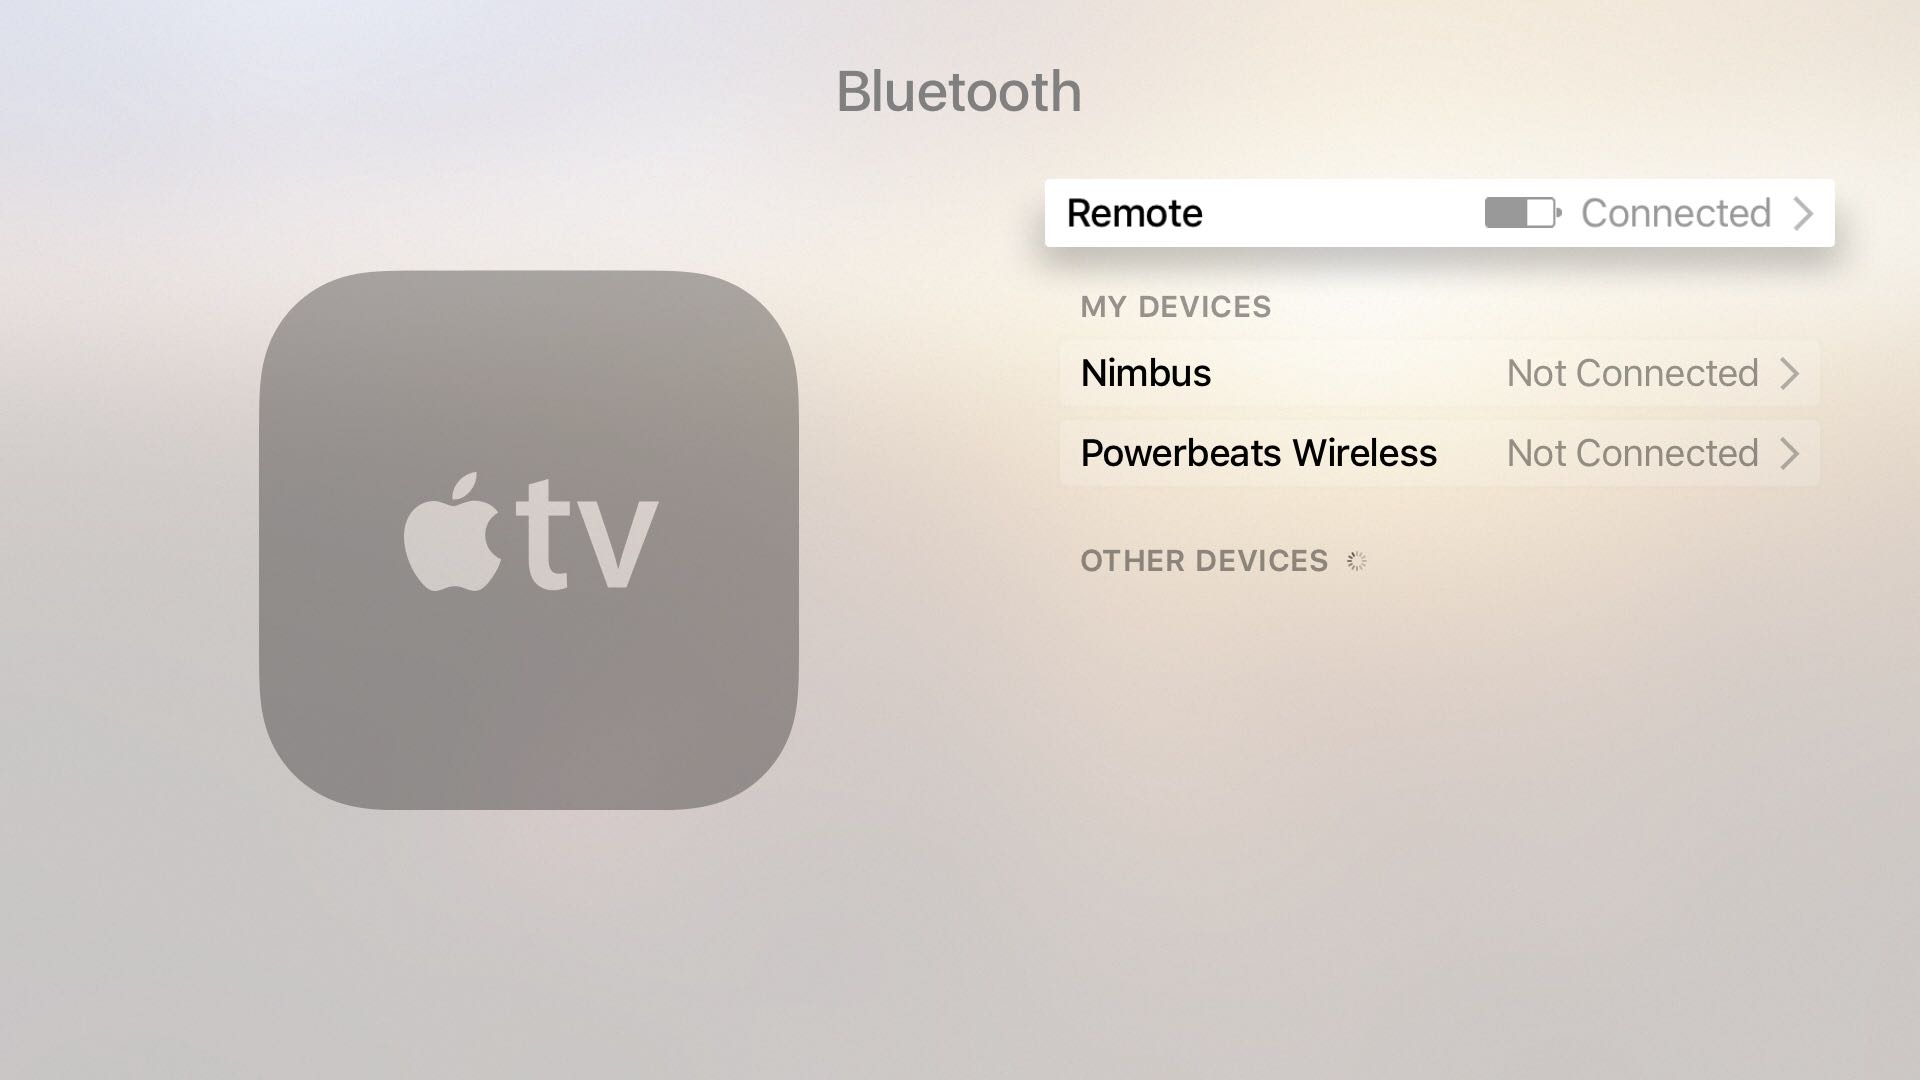 Configuración remota de Apple TV